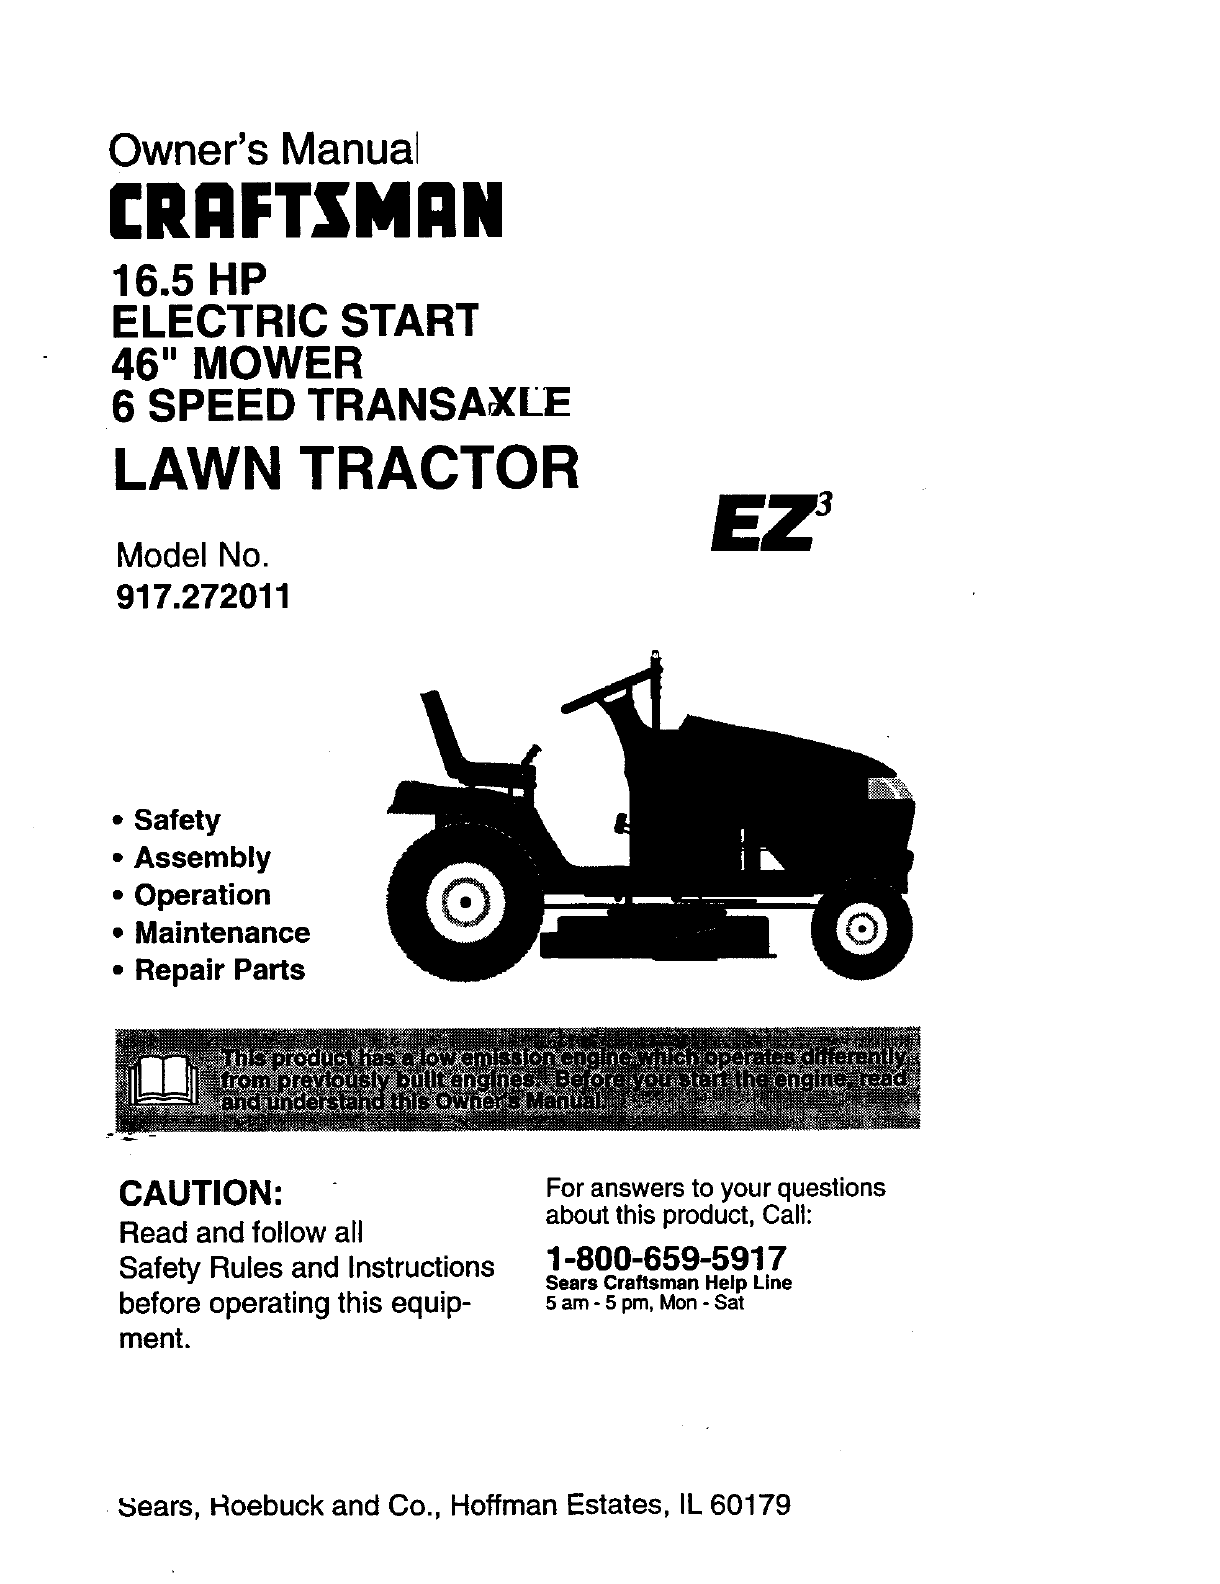 Craftsman 917272011 User Manual LAWN TRACTOR Manuals And